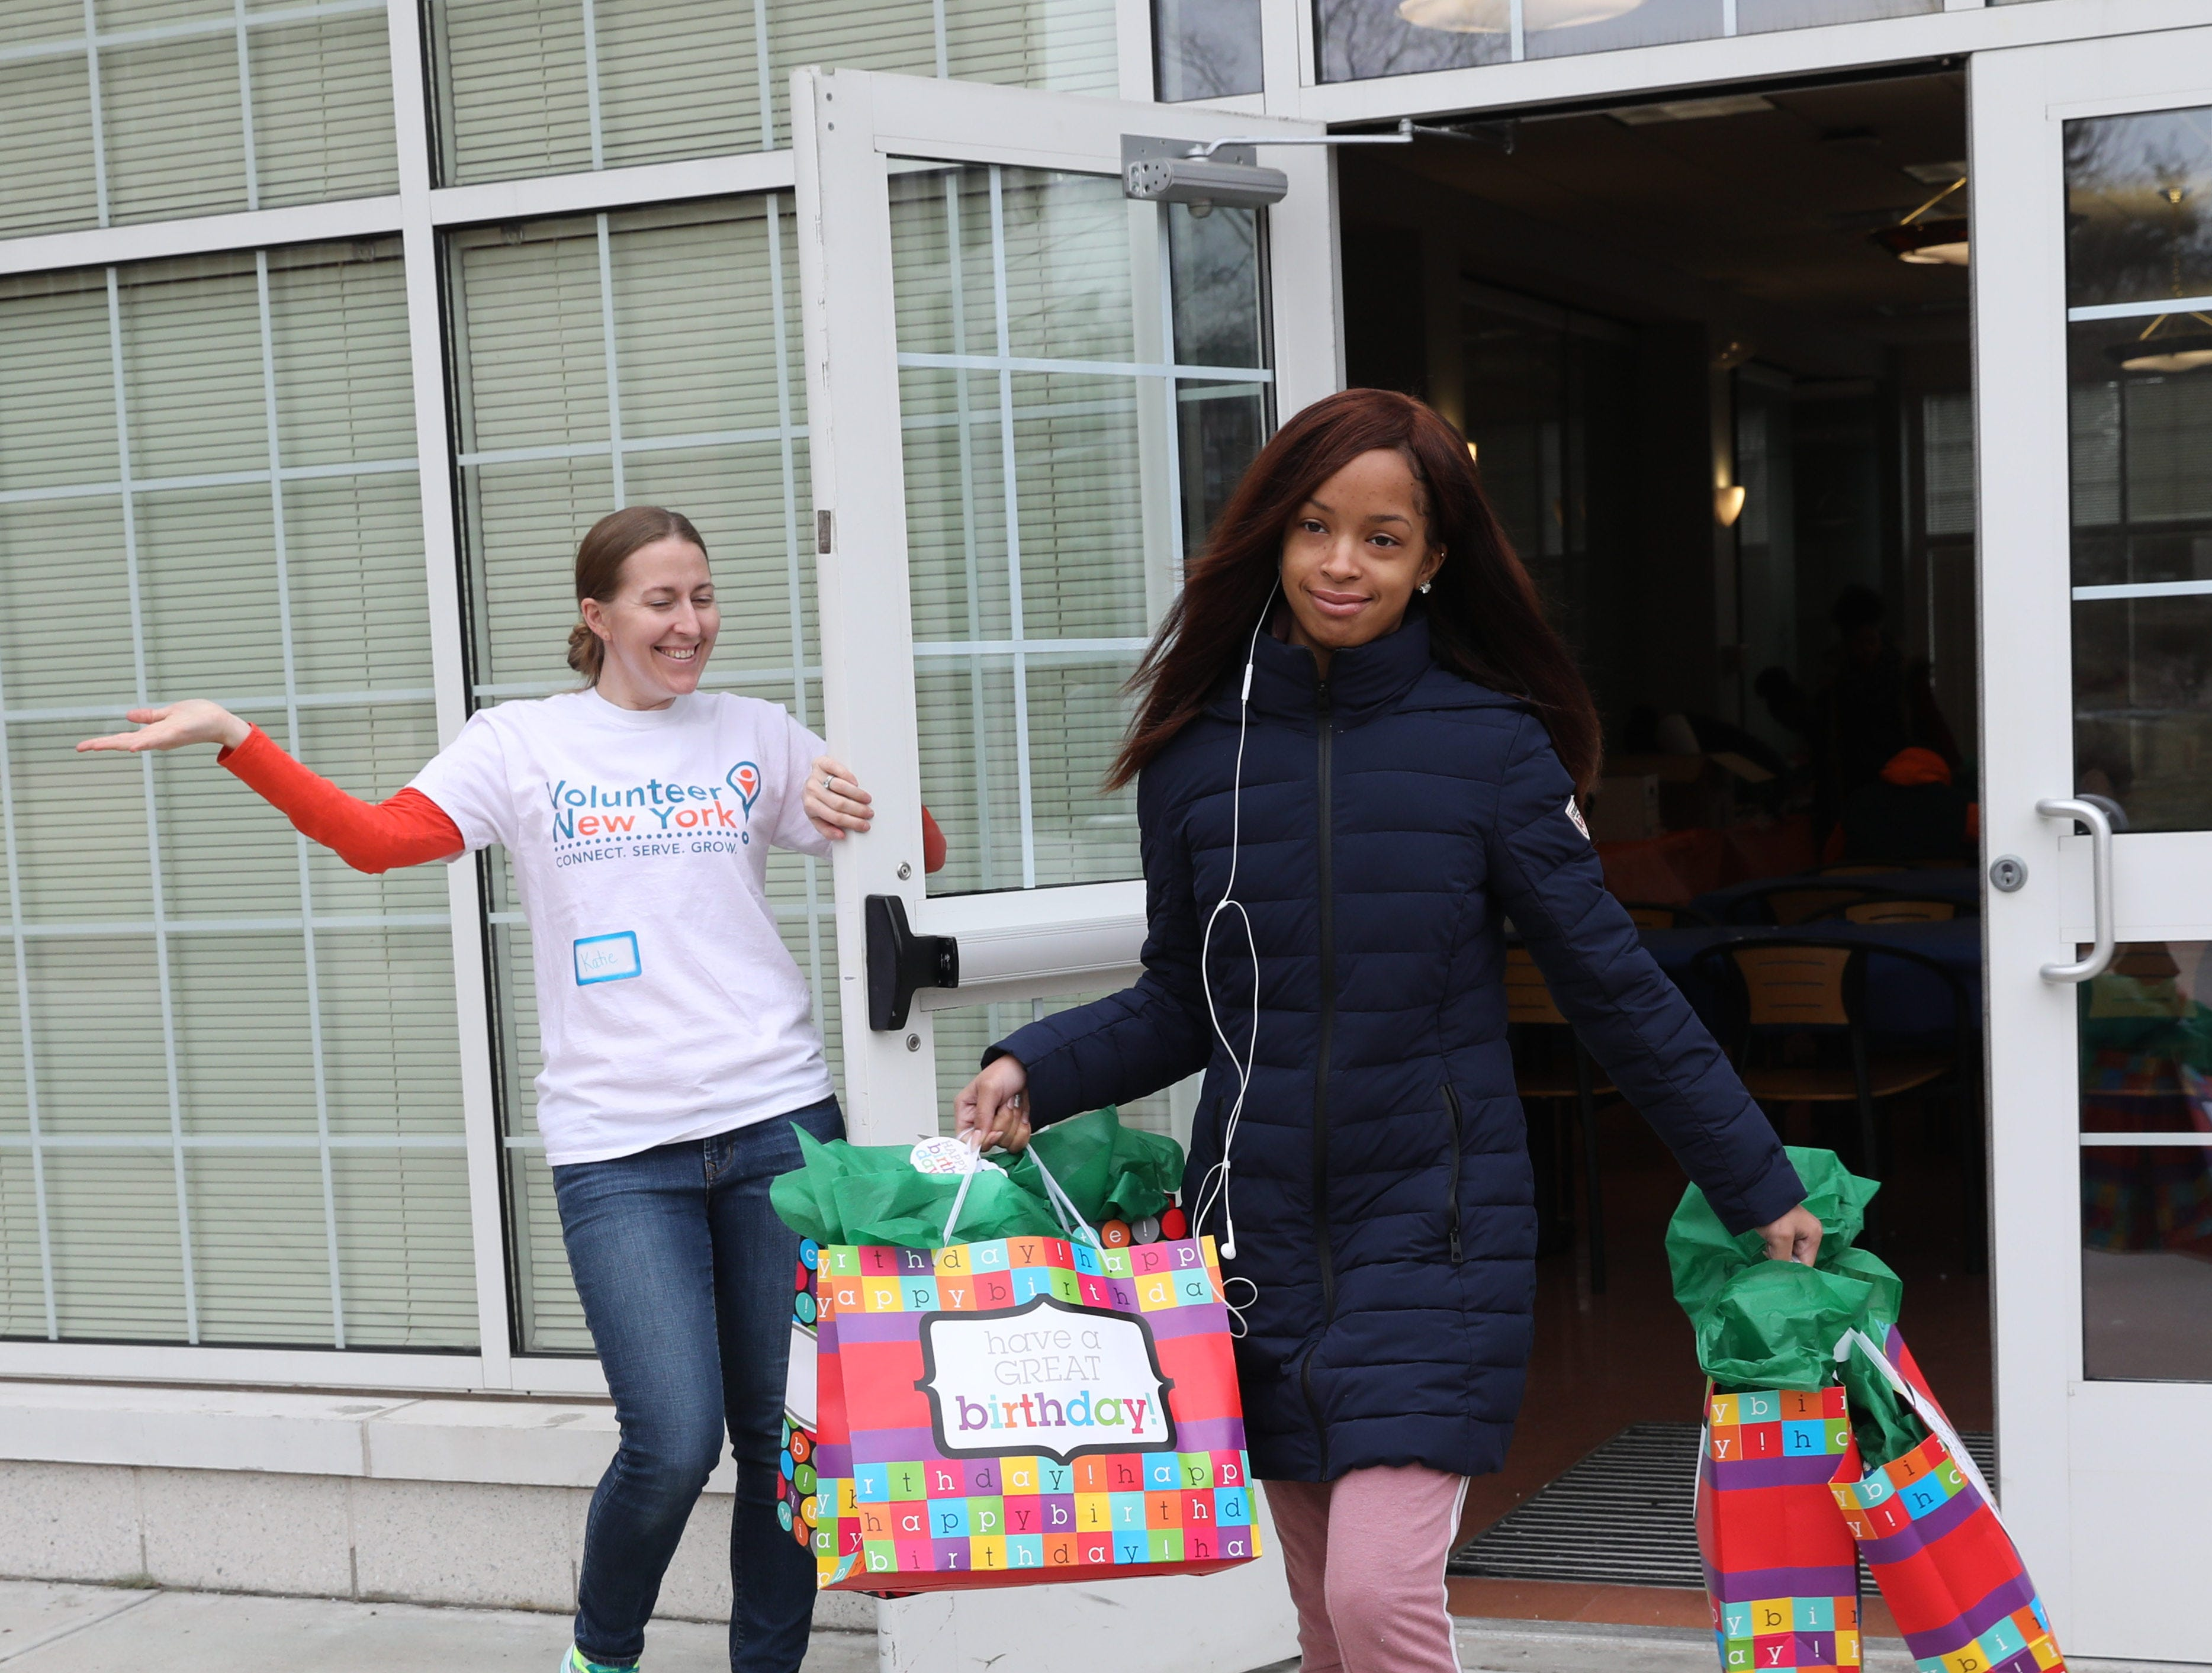 """Volunteer Brianna Ferrer carries out """"birthday bags"""" as Katie Pfeifer with Volunteer New York holds the door, during the Volunteer New York, Martin Luther King Jr. National Day of Service program at Dominican College in Orangeburg, Jan. 19, 2019. The birthday bags will be brought to the Nyack Center for distribution."""